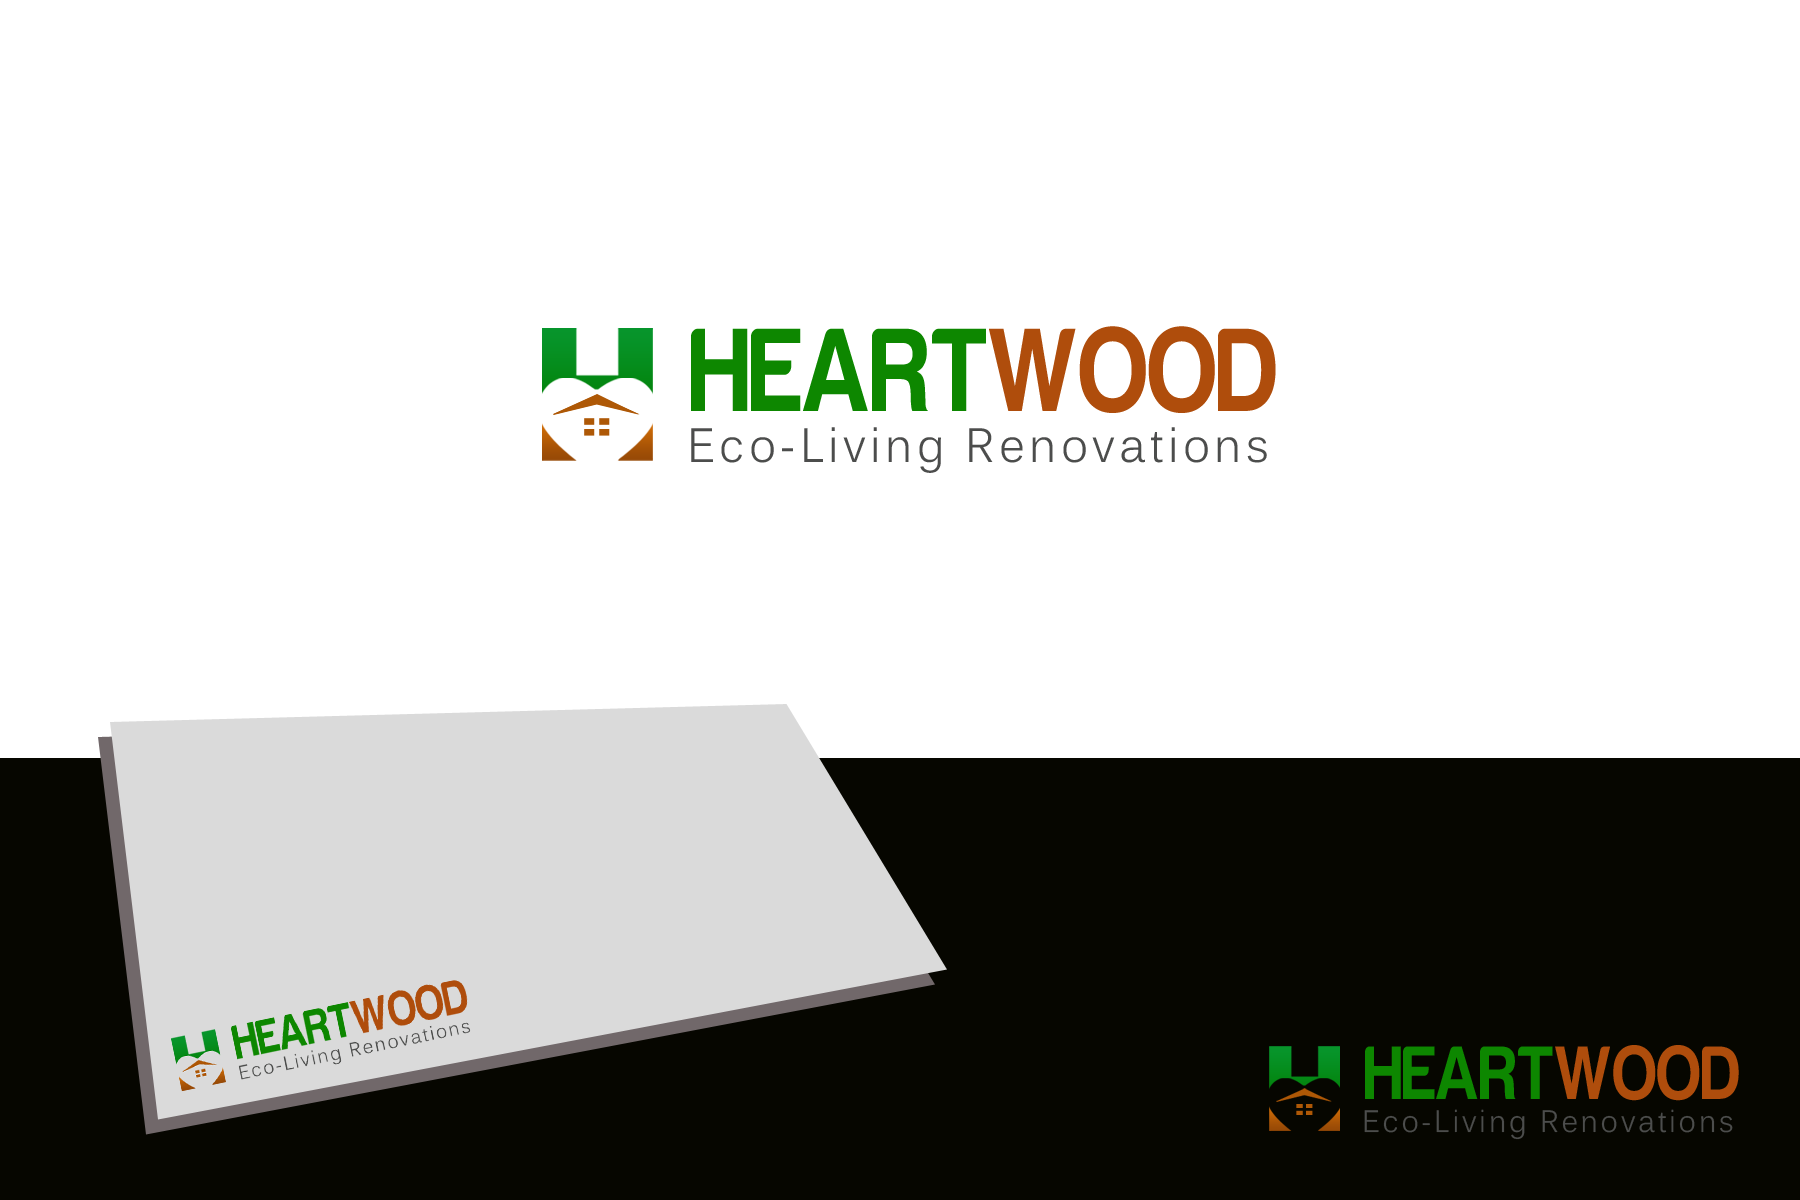 Logo Design by golden-hand - Entry No. 15 in the Logo Design Contest New Logo Design for Heartwood Eco-Living Renovations.